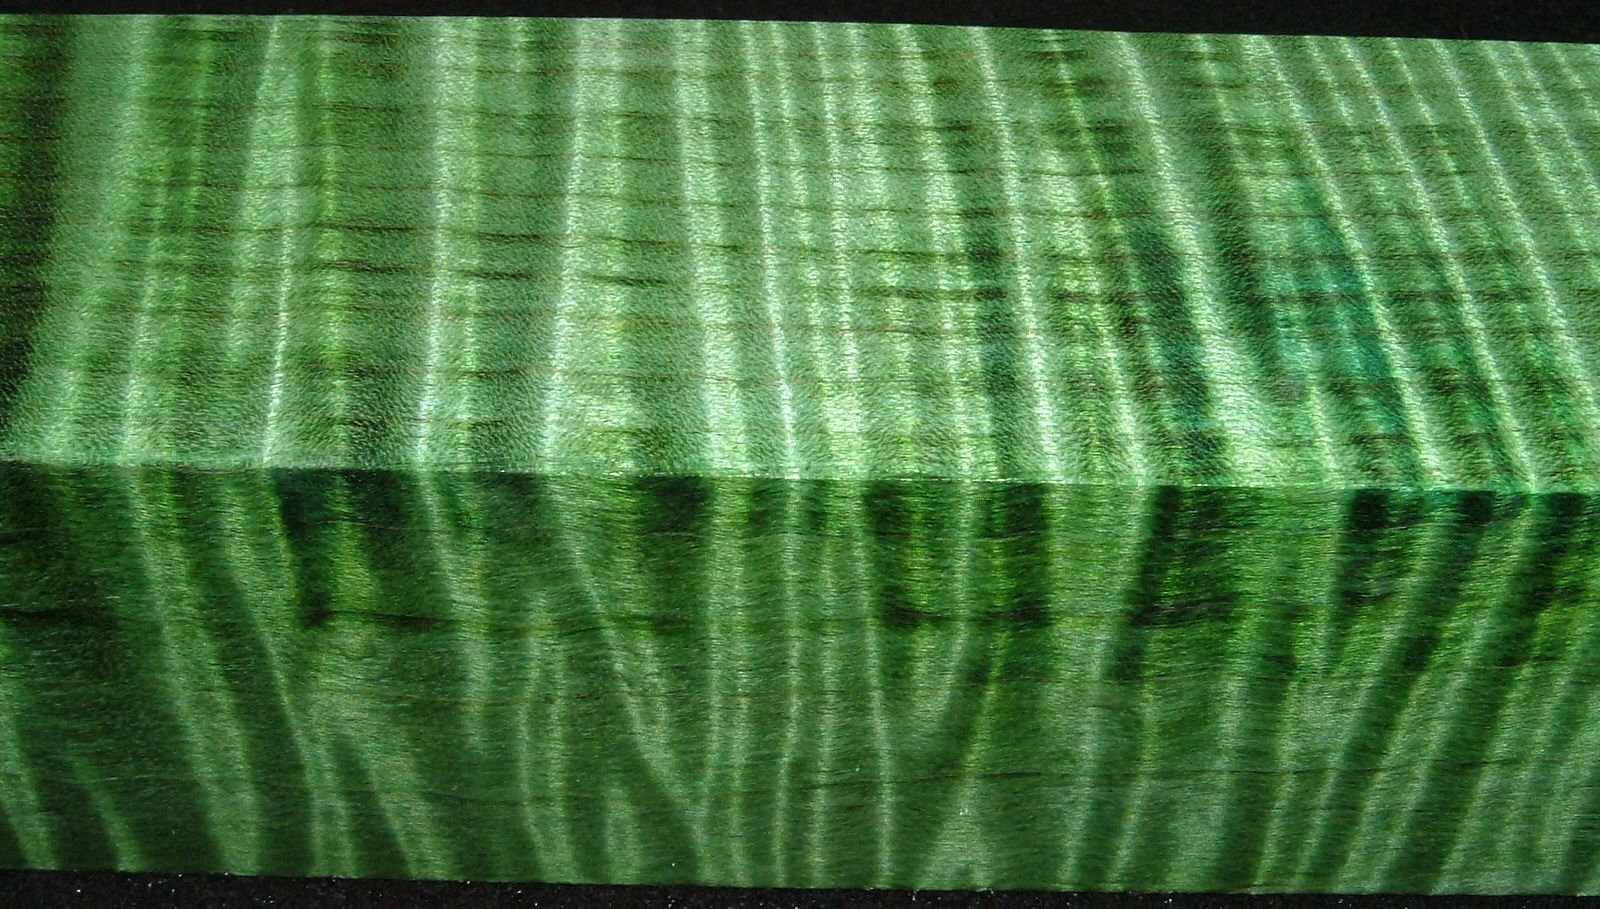 Z322, 1-7/8x1-7/8x7-1/4 ,Green, Curly Tiger Maple Dyed Stabilized, wood turning block